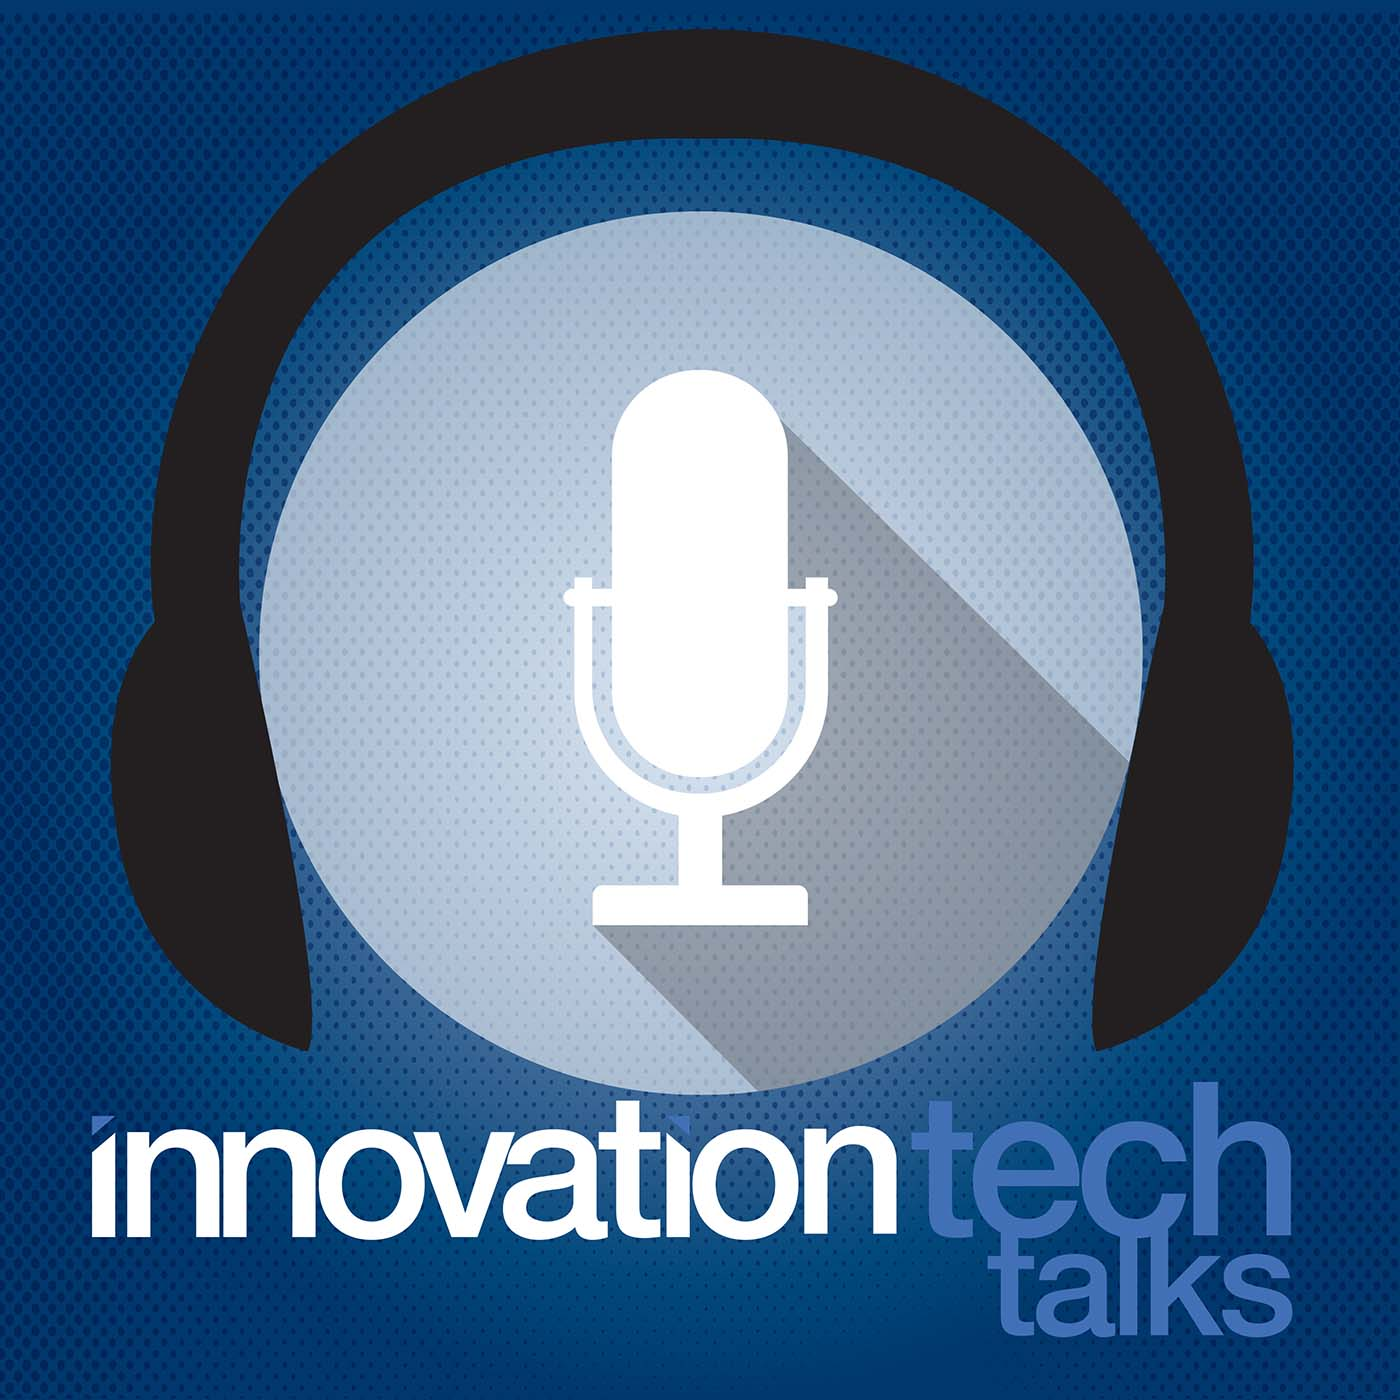 Innovation Tech Talks